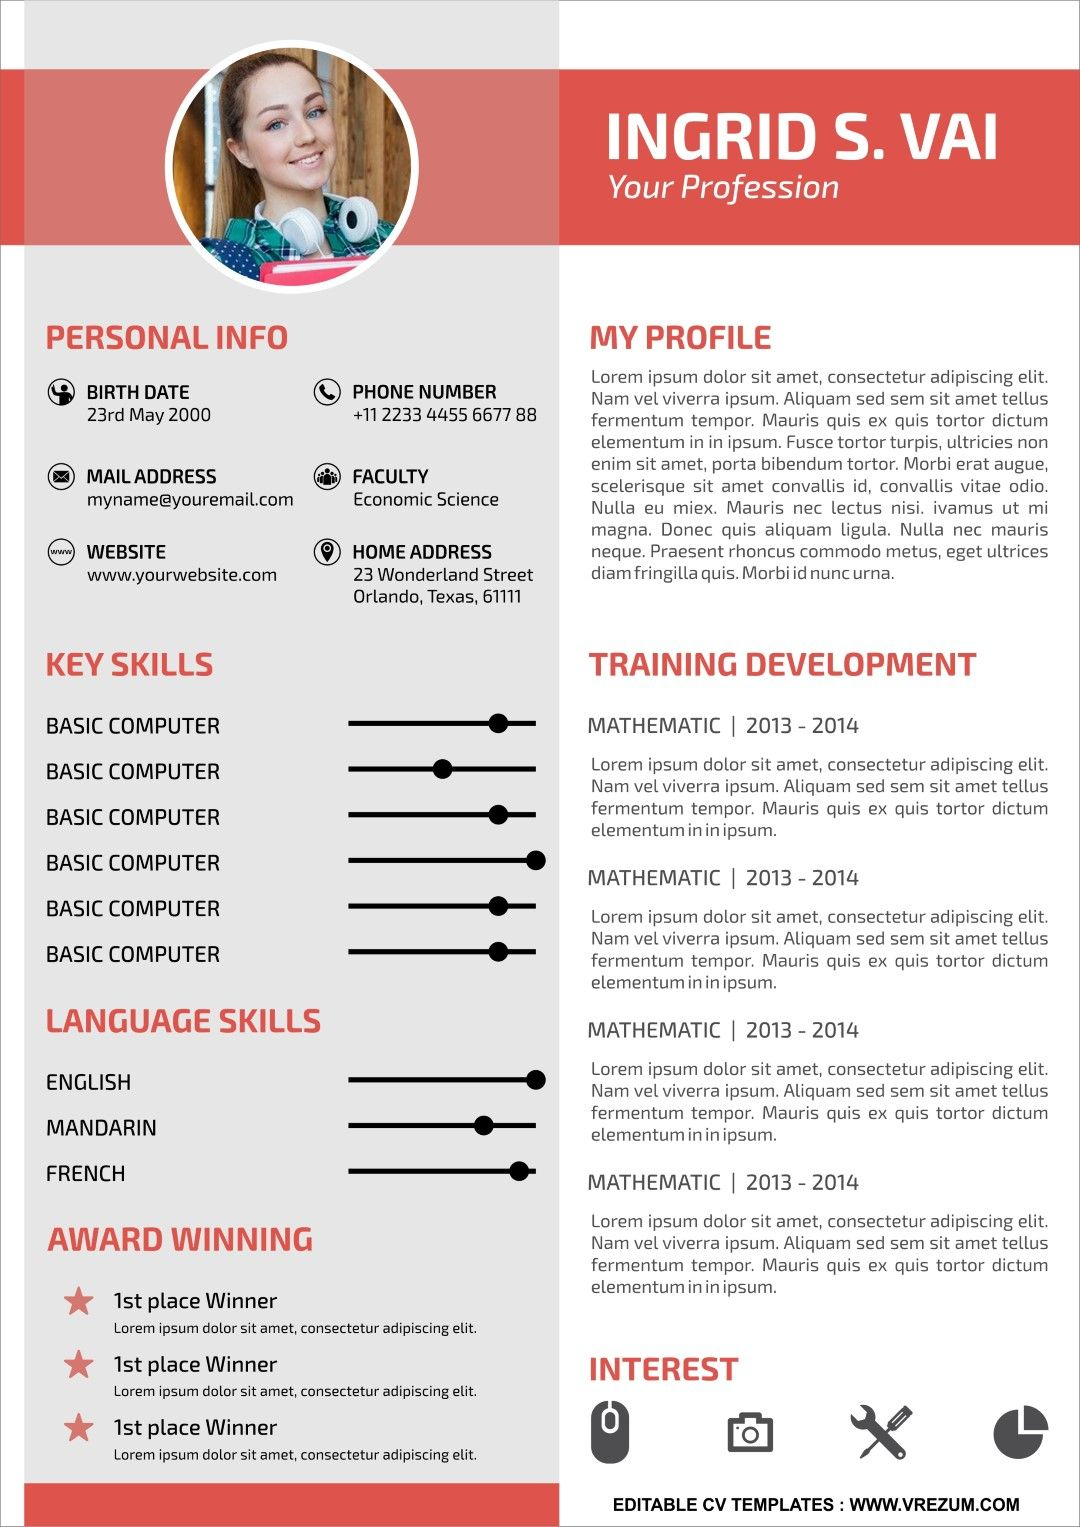 (EDITABLE) FREE CV Templates For University Student in